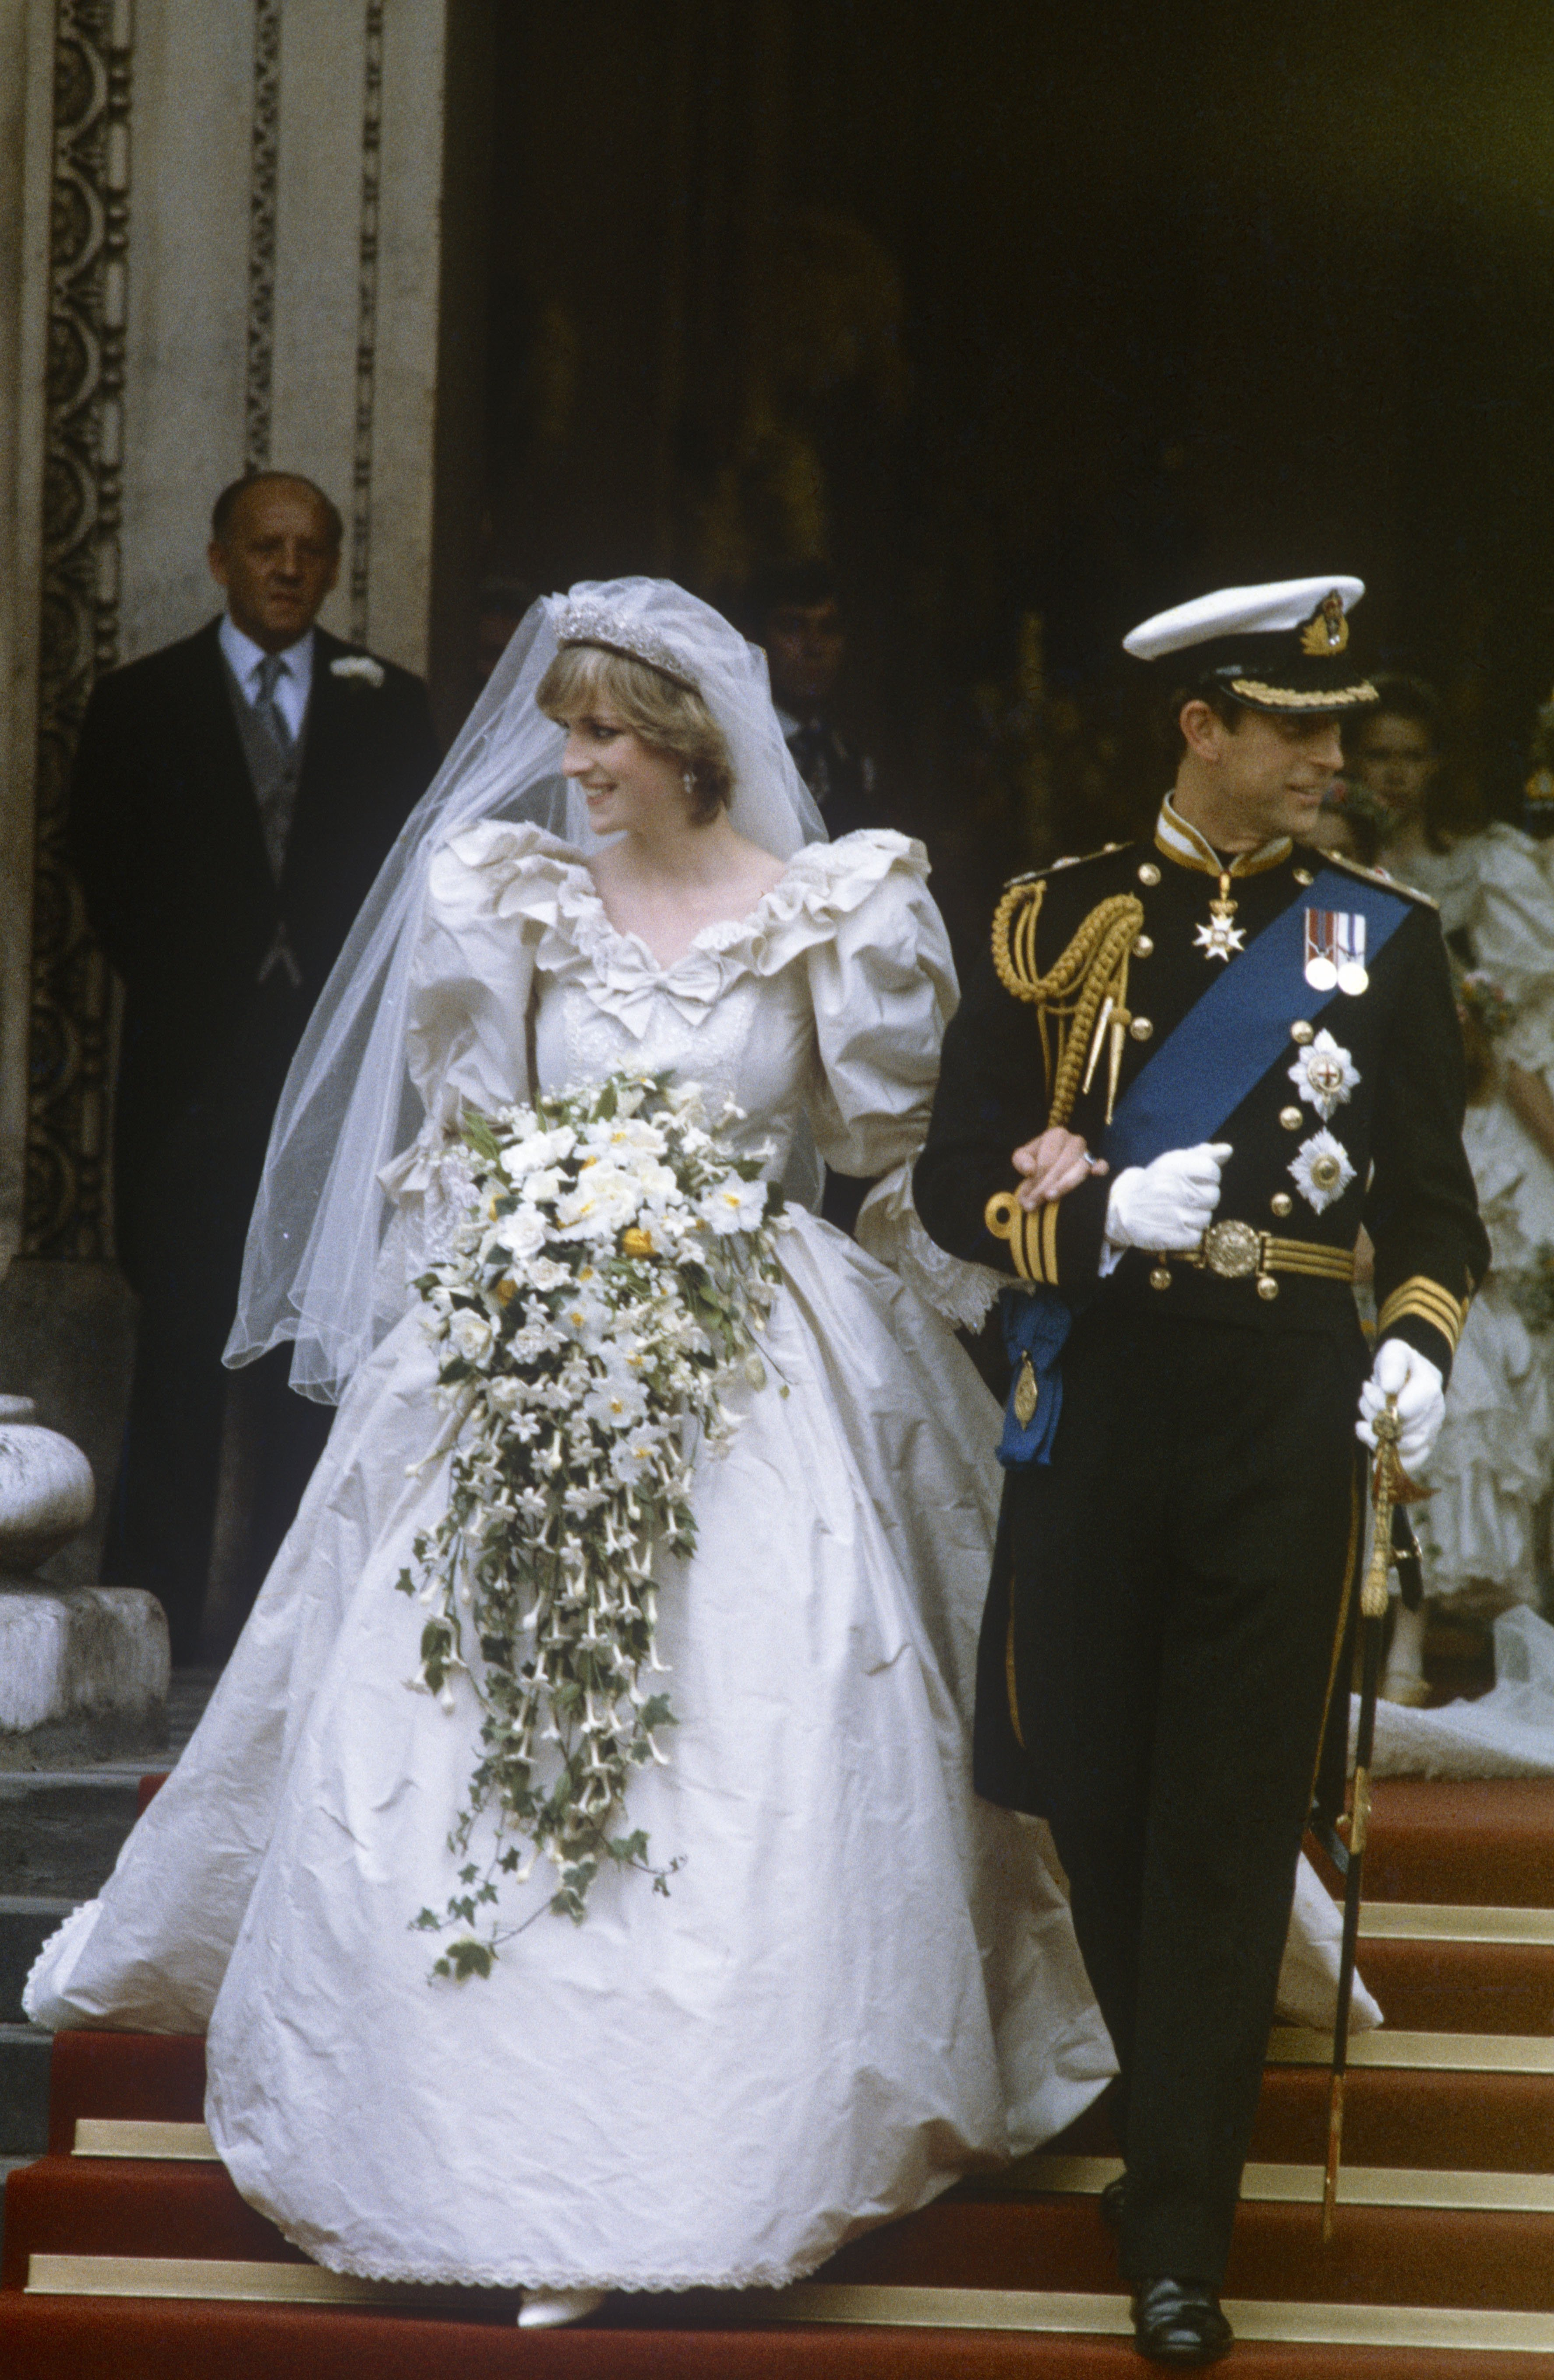 Diana, Princess of Wales and Prince Charles leave St. Paul's Cathedral after their wedding on July 29, 1981, in London. | Source: Getty Images.